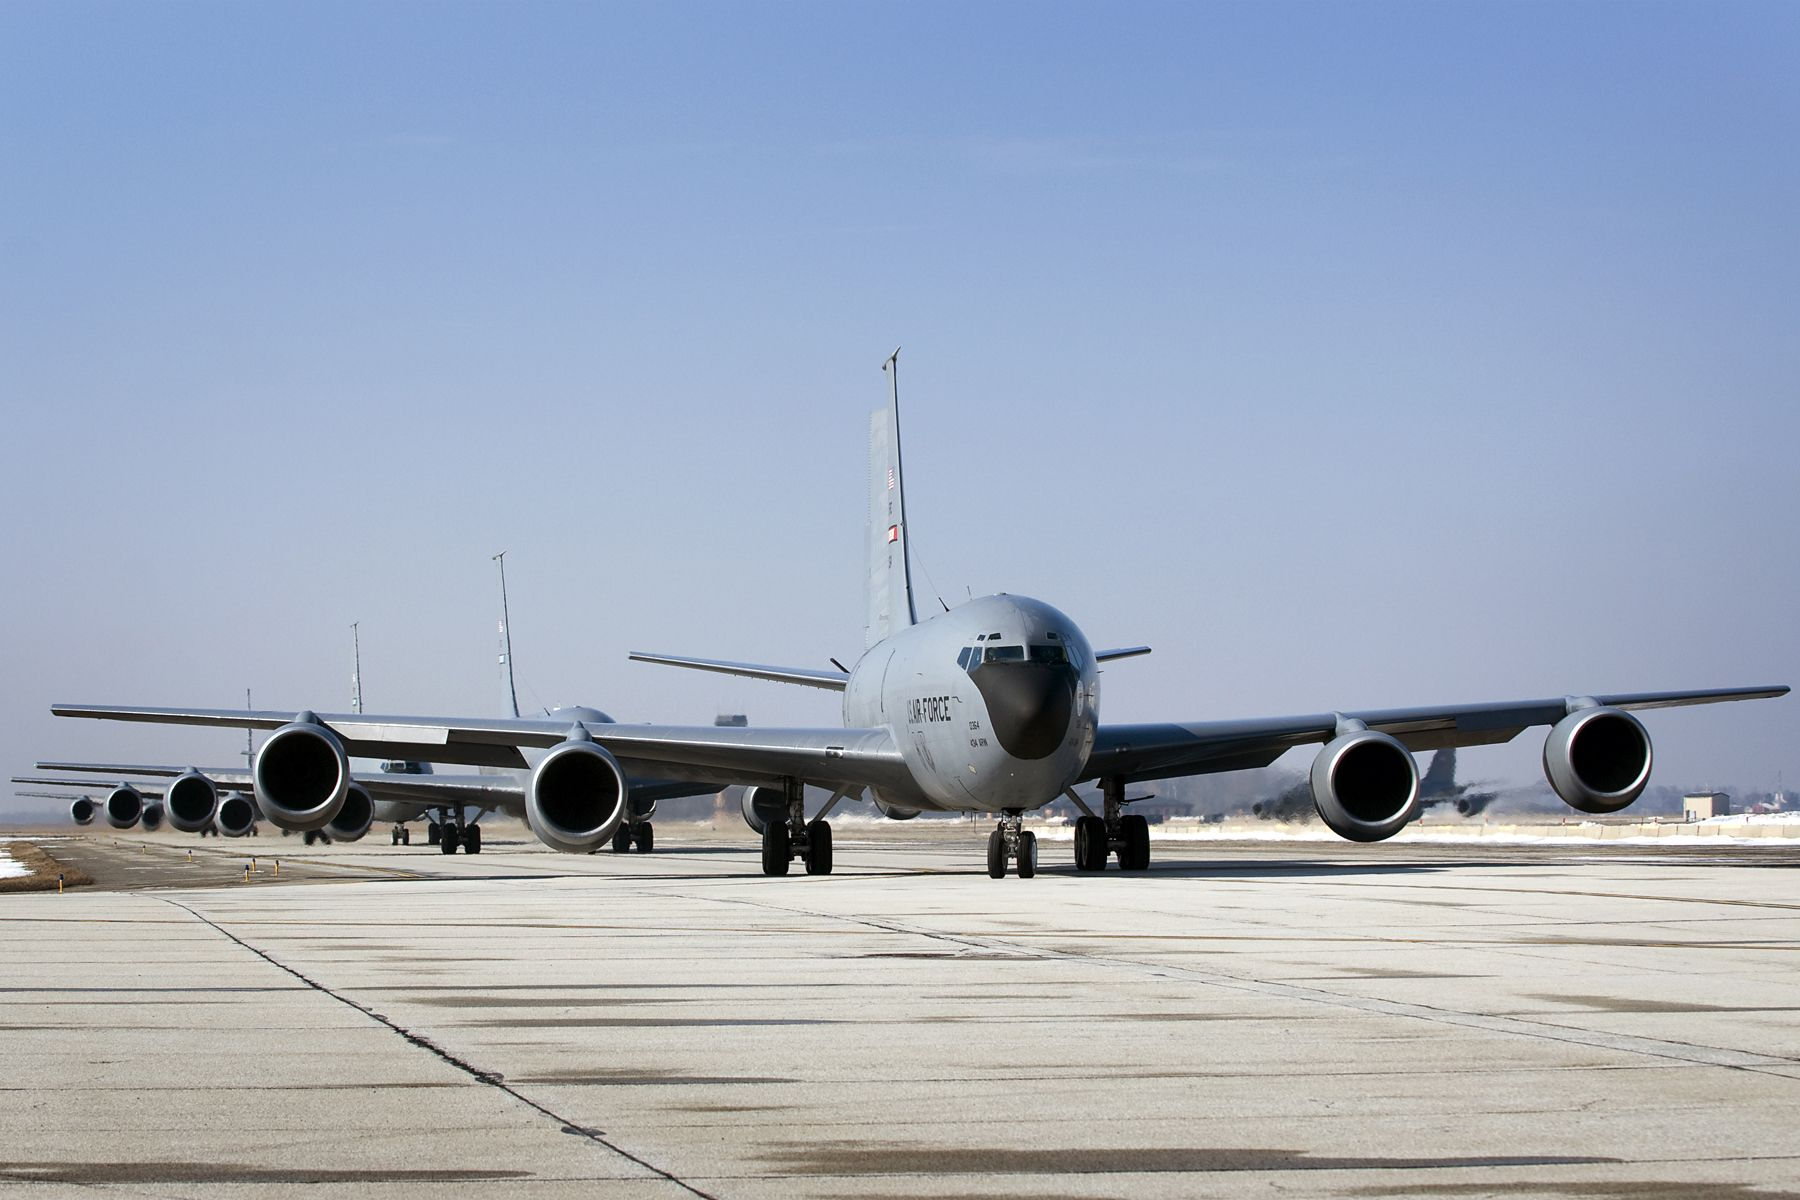 Five 434th Air Refueling Wing KC-135R Stratotankers head down a taxiway at Grissom Air Reserve Base, Ind., March 9, 2014. During the 434th ARW's March unit training assembly, the unit held a strategic warfare exercise, executing various response, mobility, and command and control procedures in response to a simulated global threat, which culminated in 10 Stratotankers taking off in two five-ship formations. (U.S. Air Force photo/Tech. Sgt. Mark R. W. Orders-Woempner)